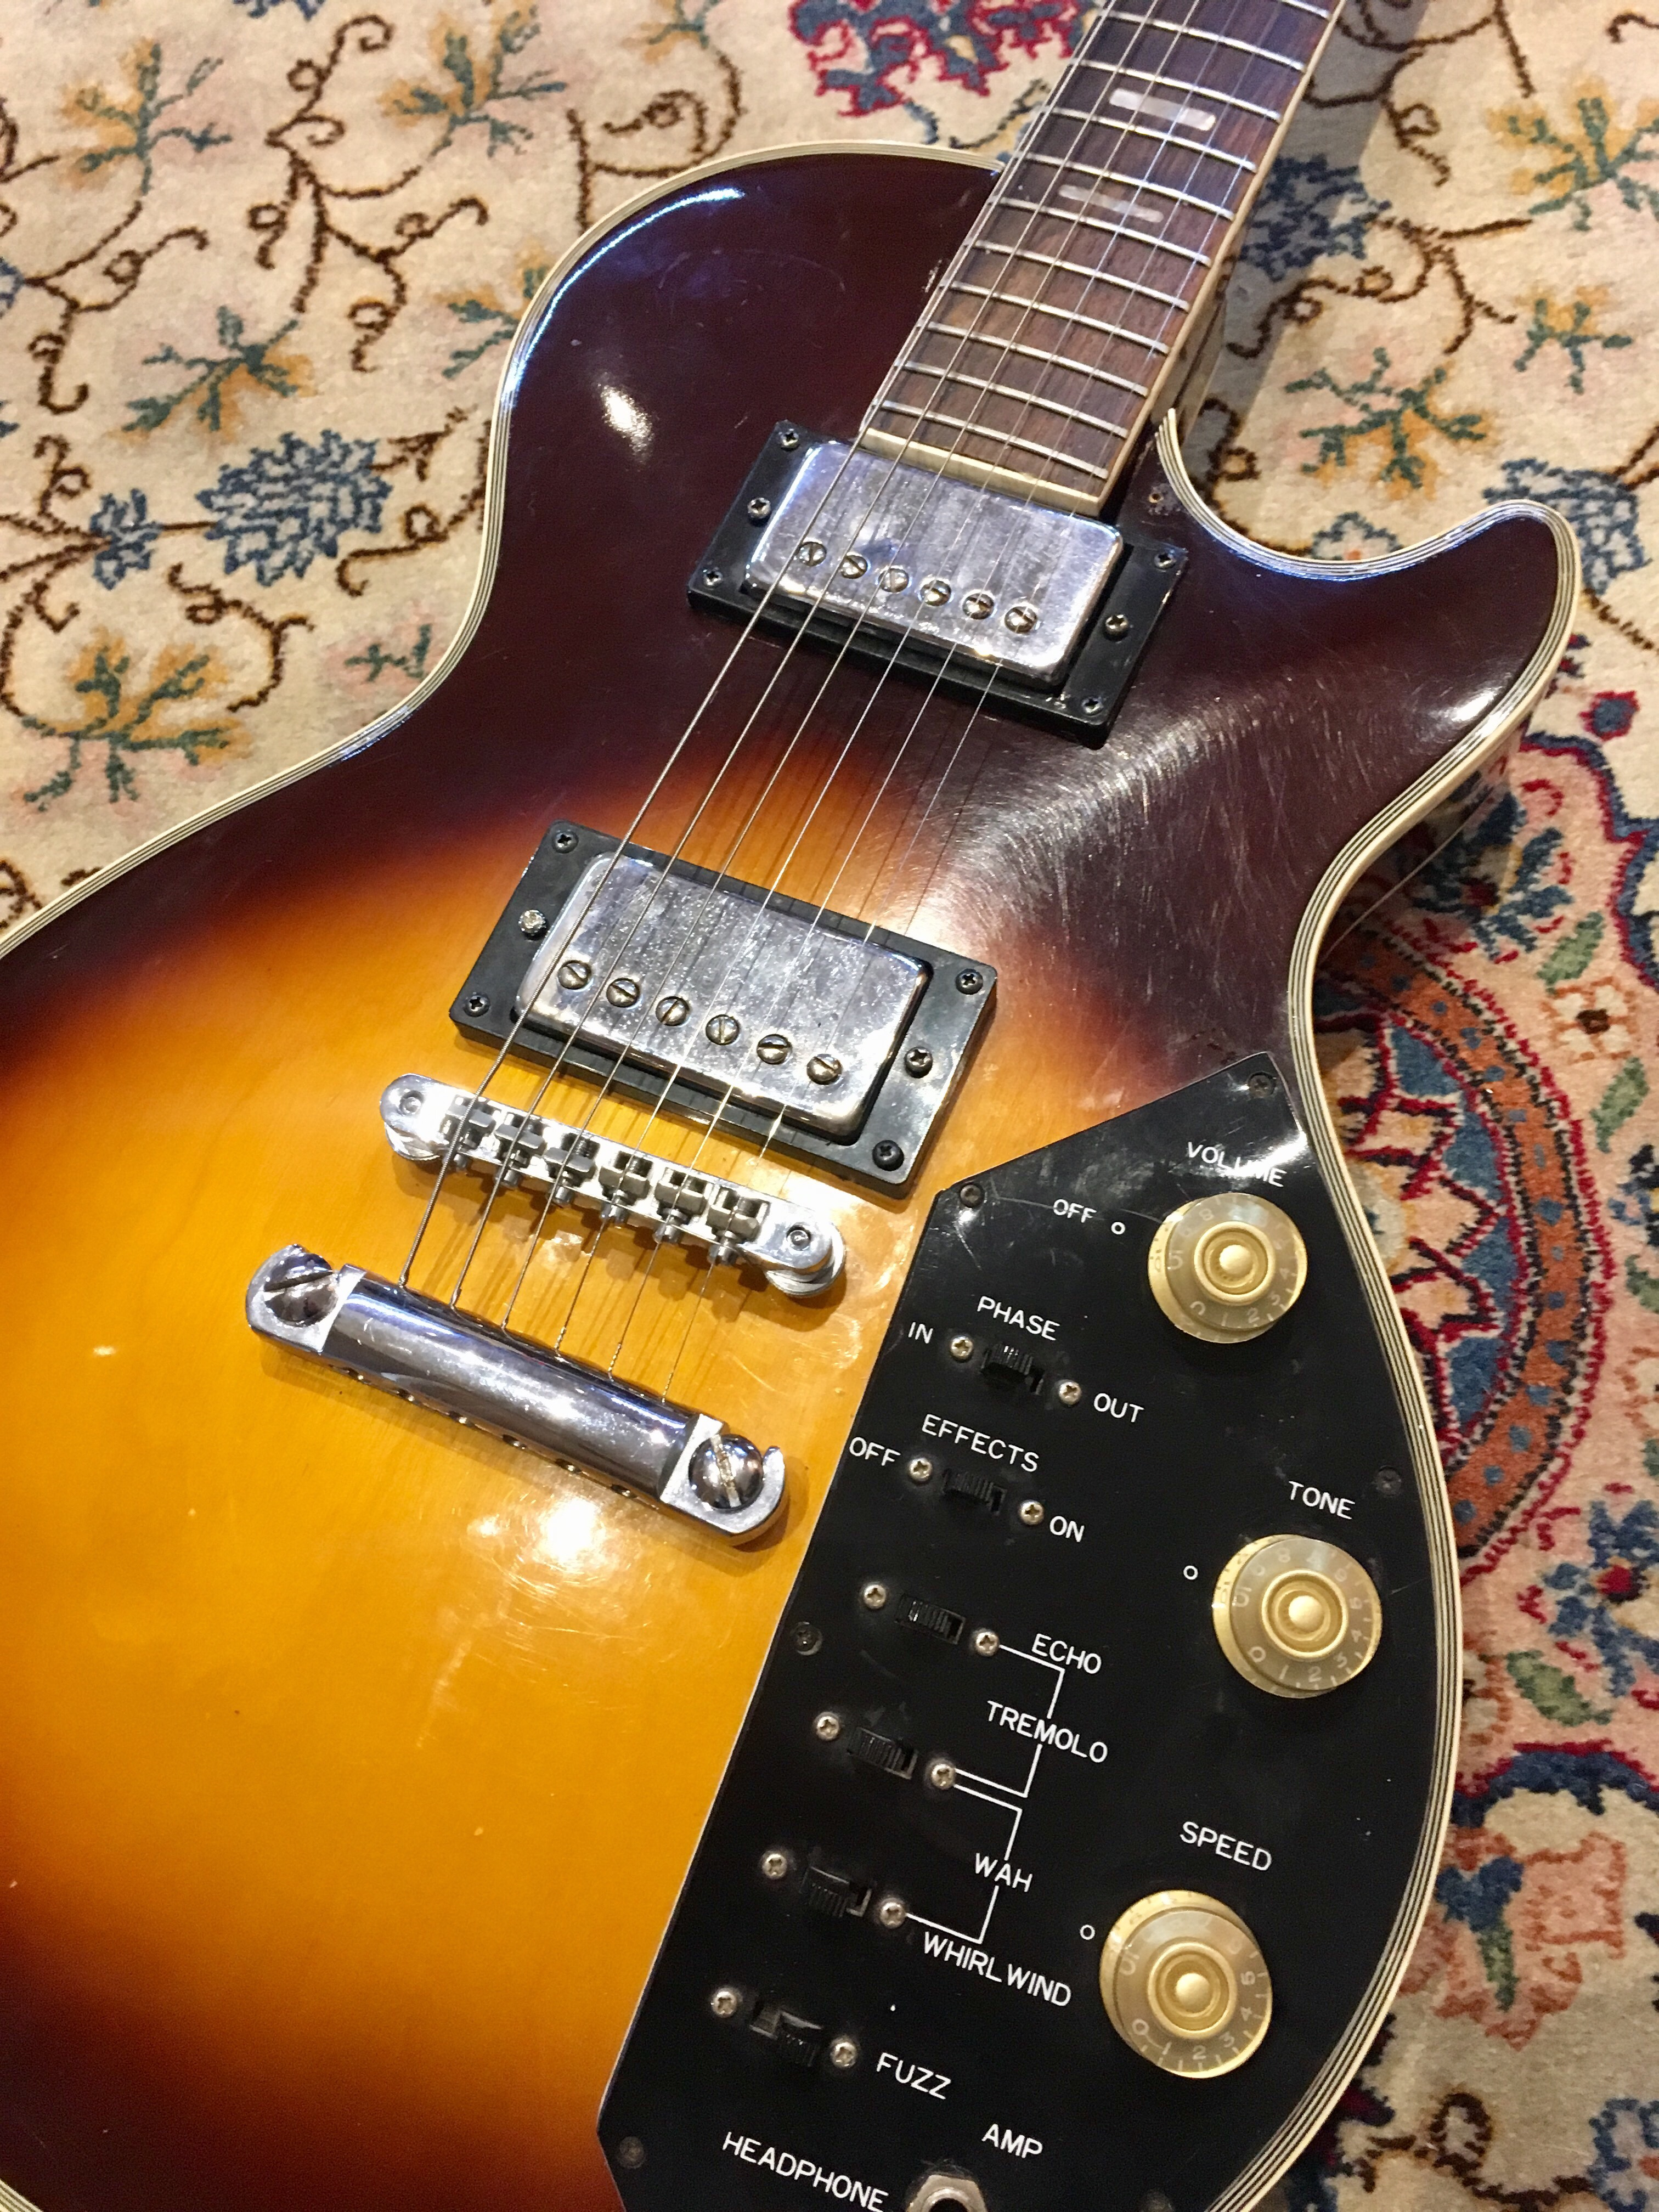 Vintage Music Gear Demos And Reviews Sears Silver Tone Guitar On Schematic Of Electric Tremolo They Create Harsh Tones Doesnt Really Provide Anything Useful Although The Whirl Wind Effect Can Be Fun For An Auto Wah Style Sound